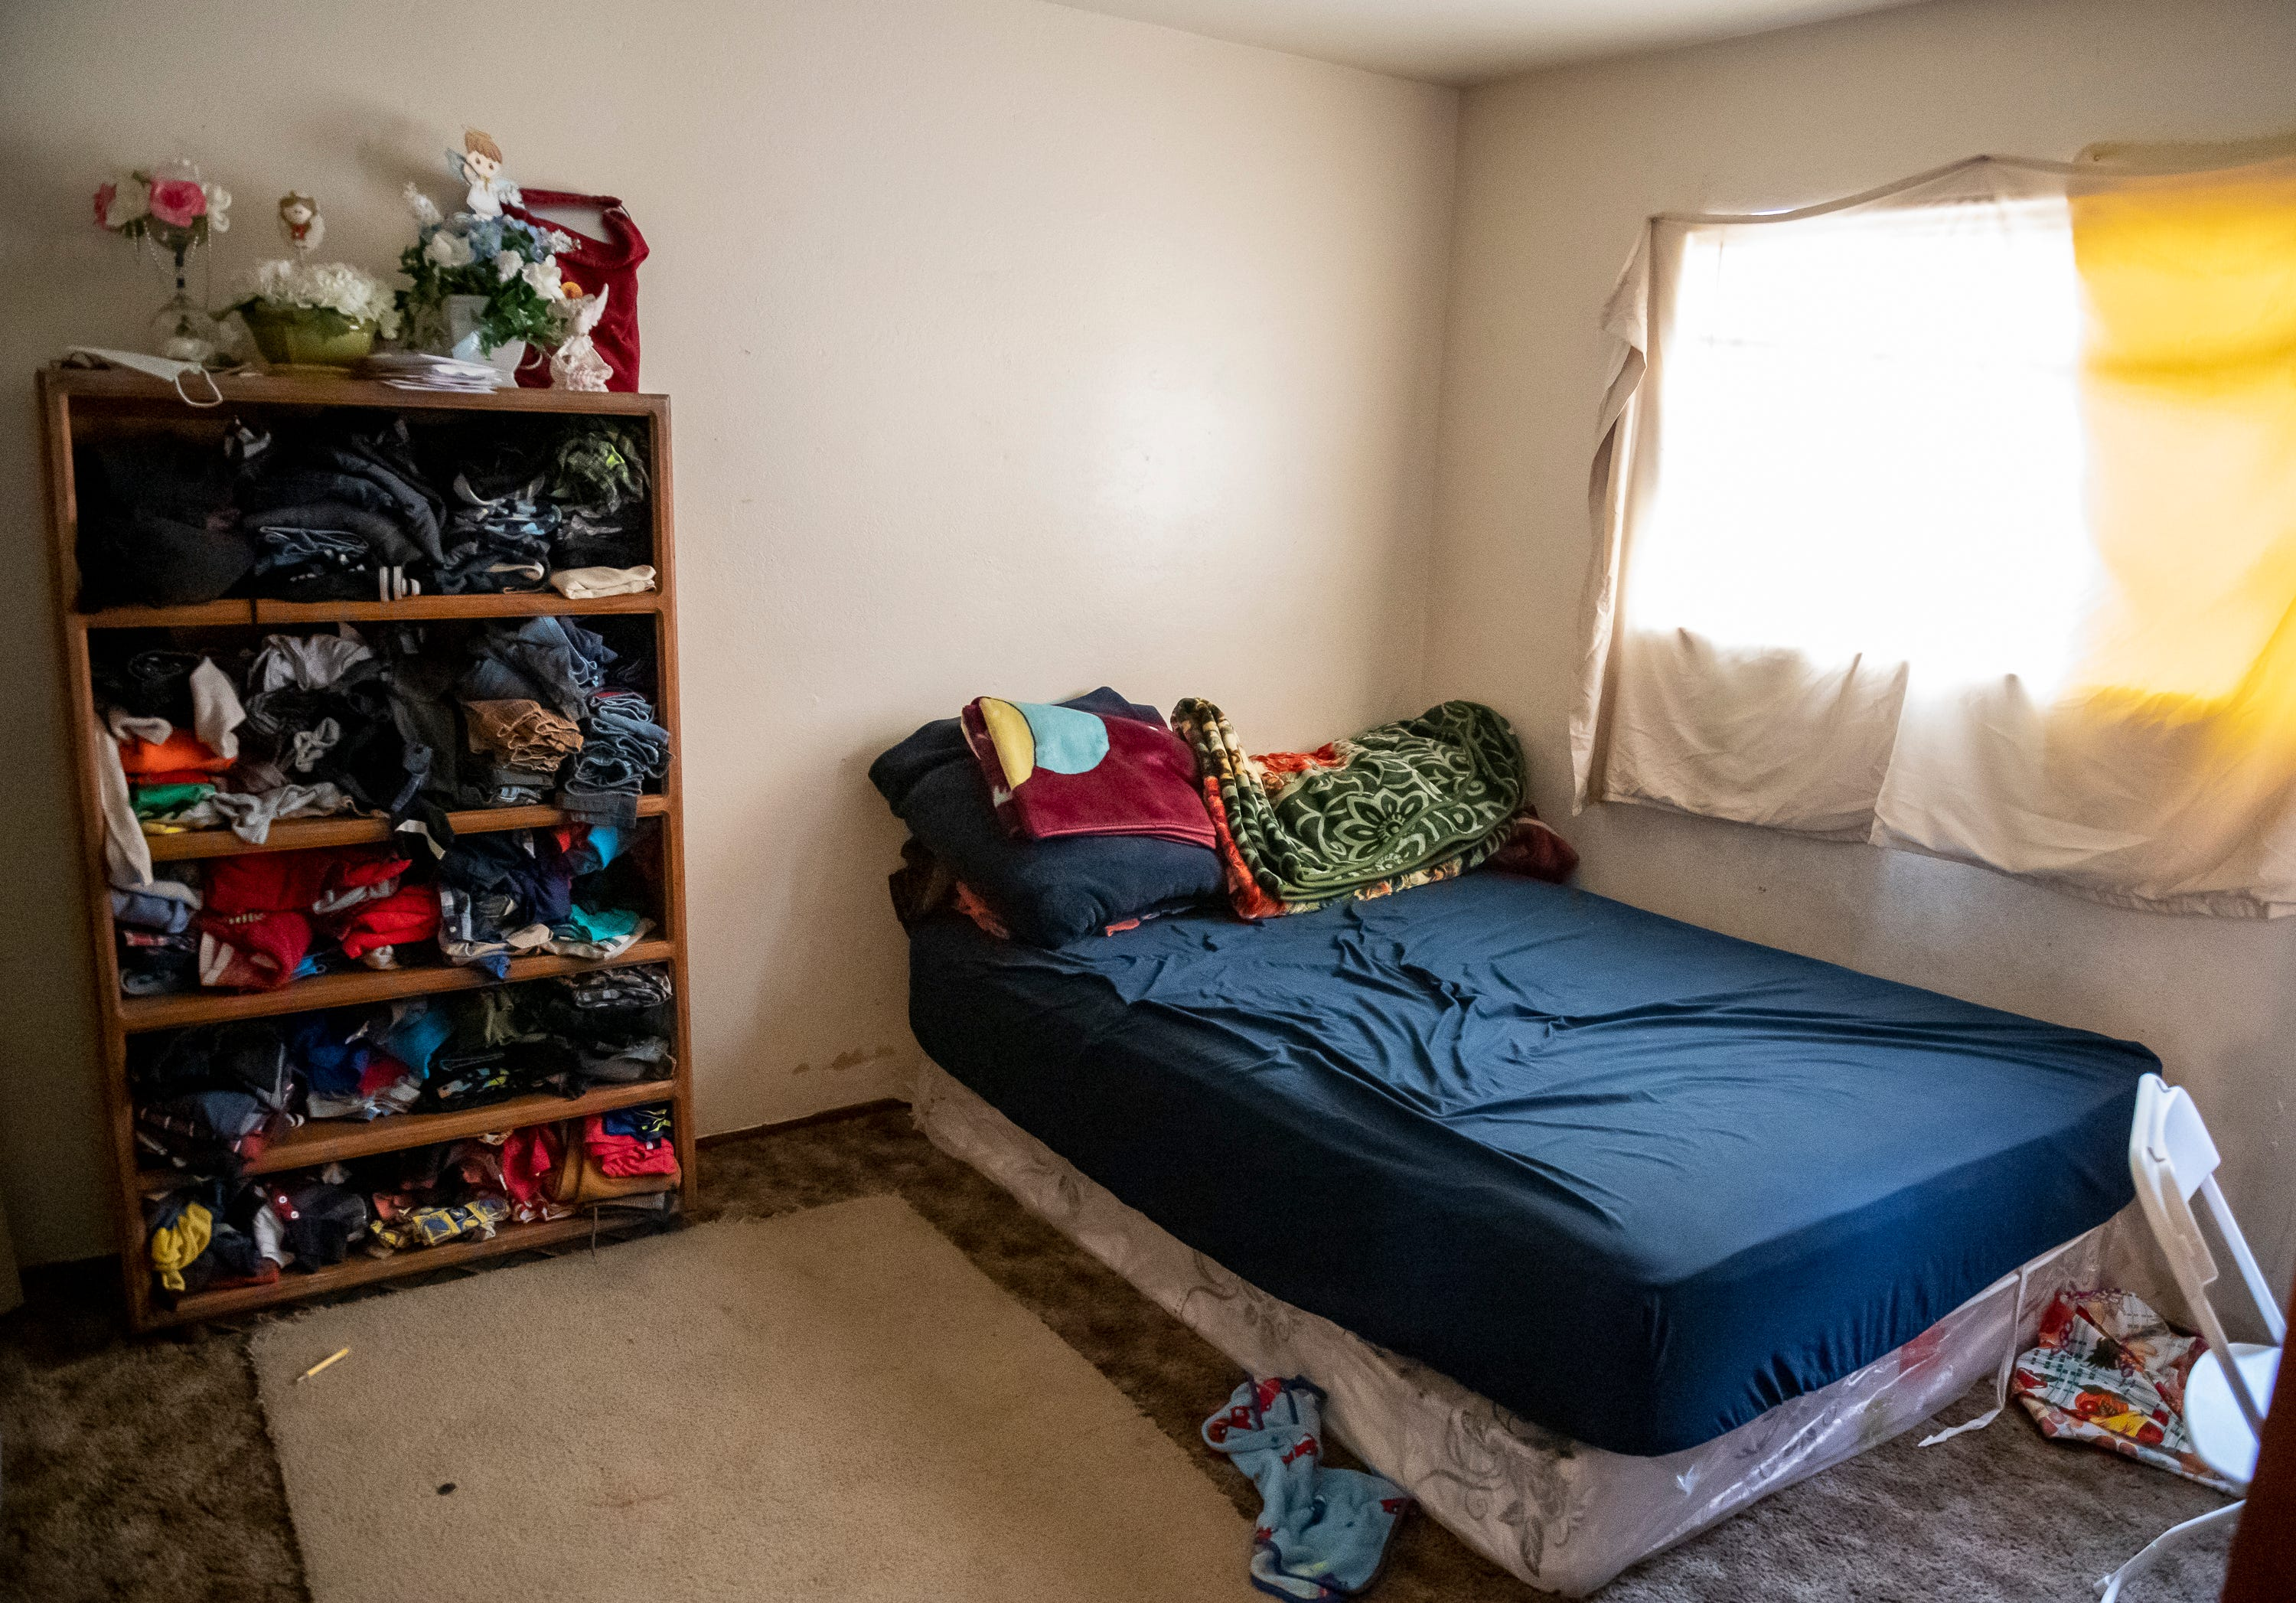 A wooden bookshelf that is used to store most of the clothes worn by the children of the Salvador family stands next to the bed that is used by Resi's mom, dad and her youngest brother Jesus. Like many children of immigrants, Resi has to sleep in the living room with her younger brothers due to her crowded living space.